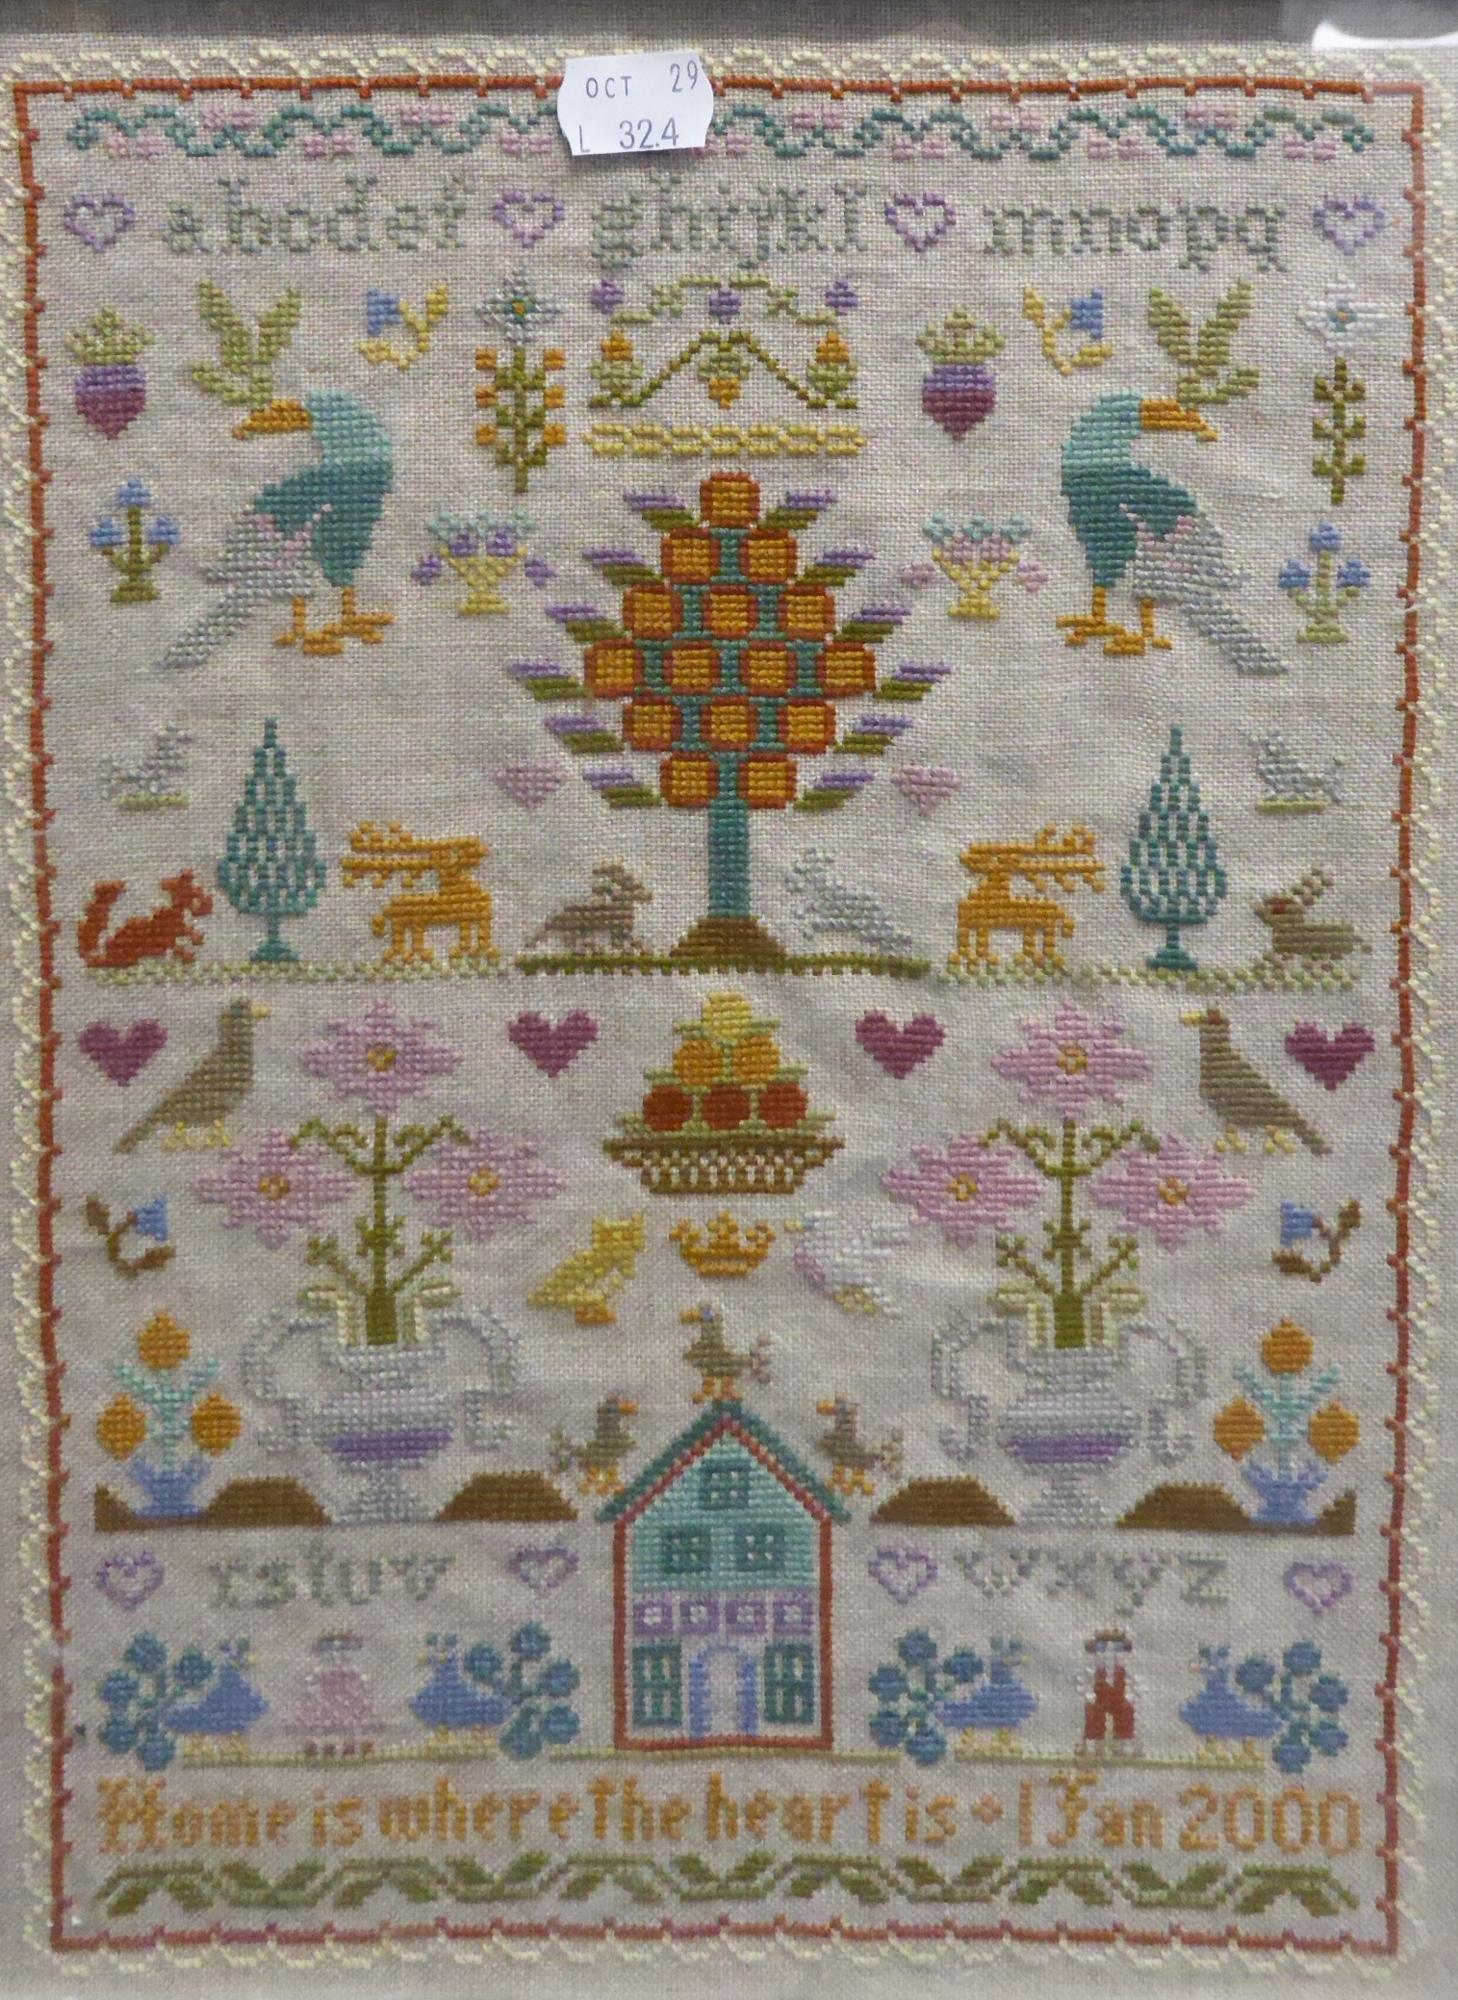 Lot 324 - MODERN NEEDLEWORK SAMPLER, worked in coloured threads with animals and flowers, the alphabet and '